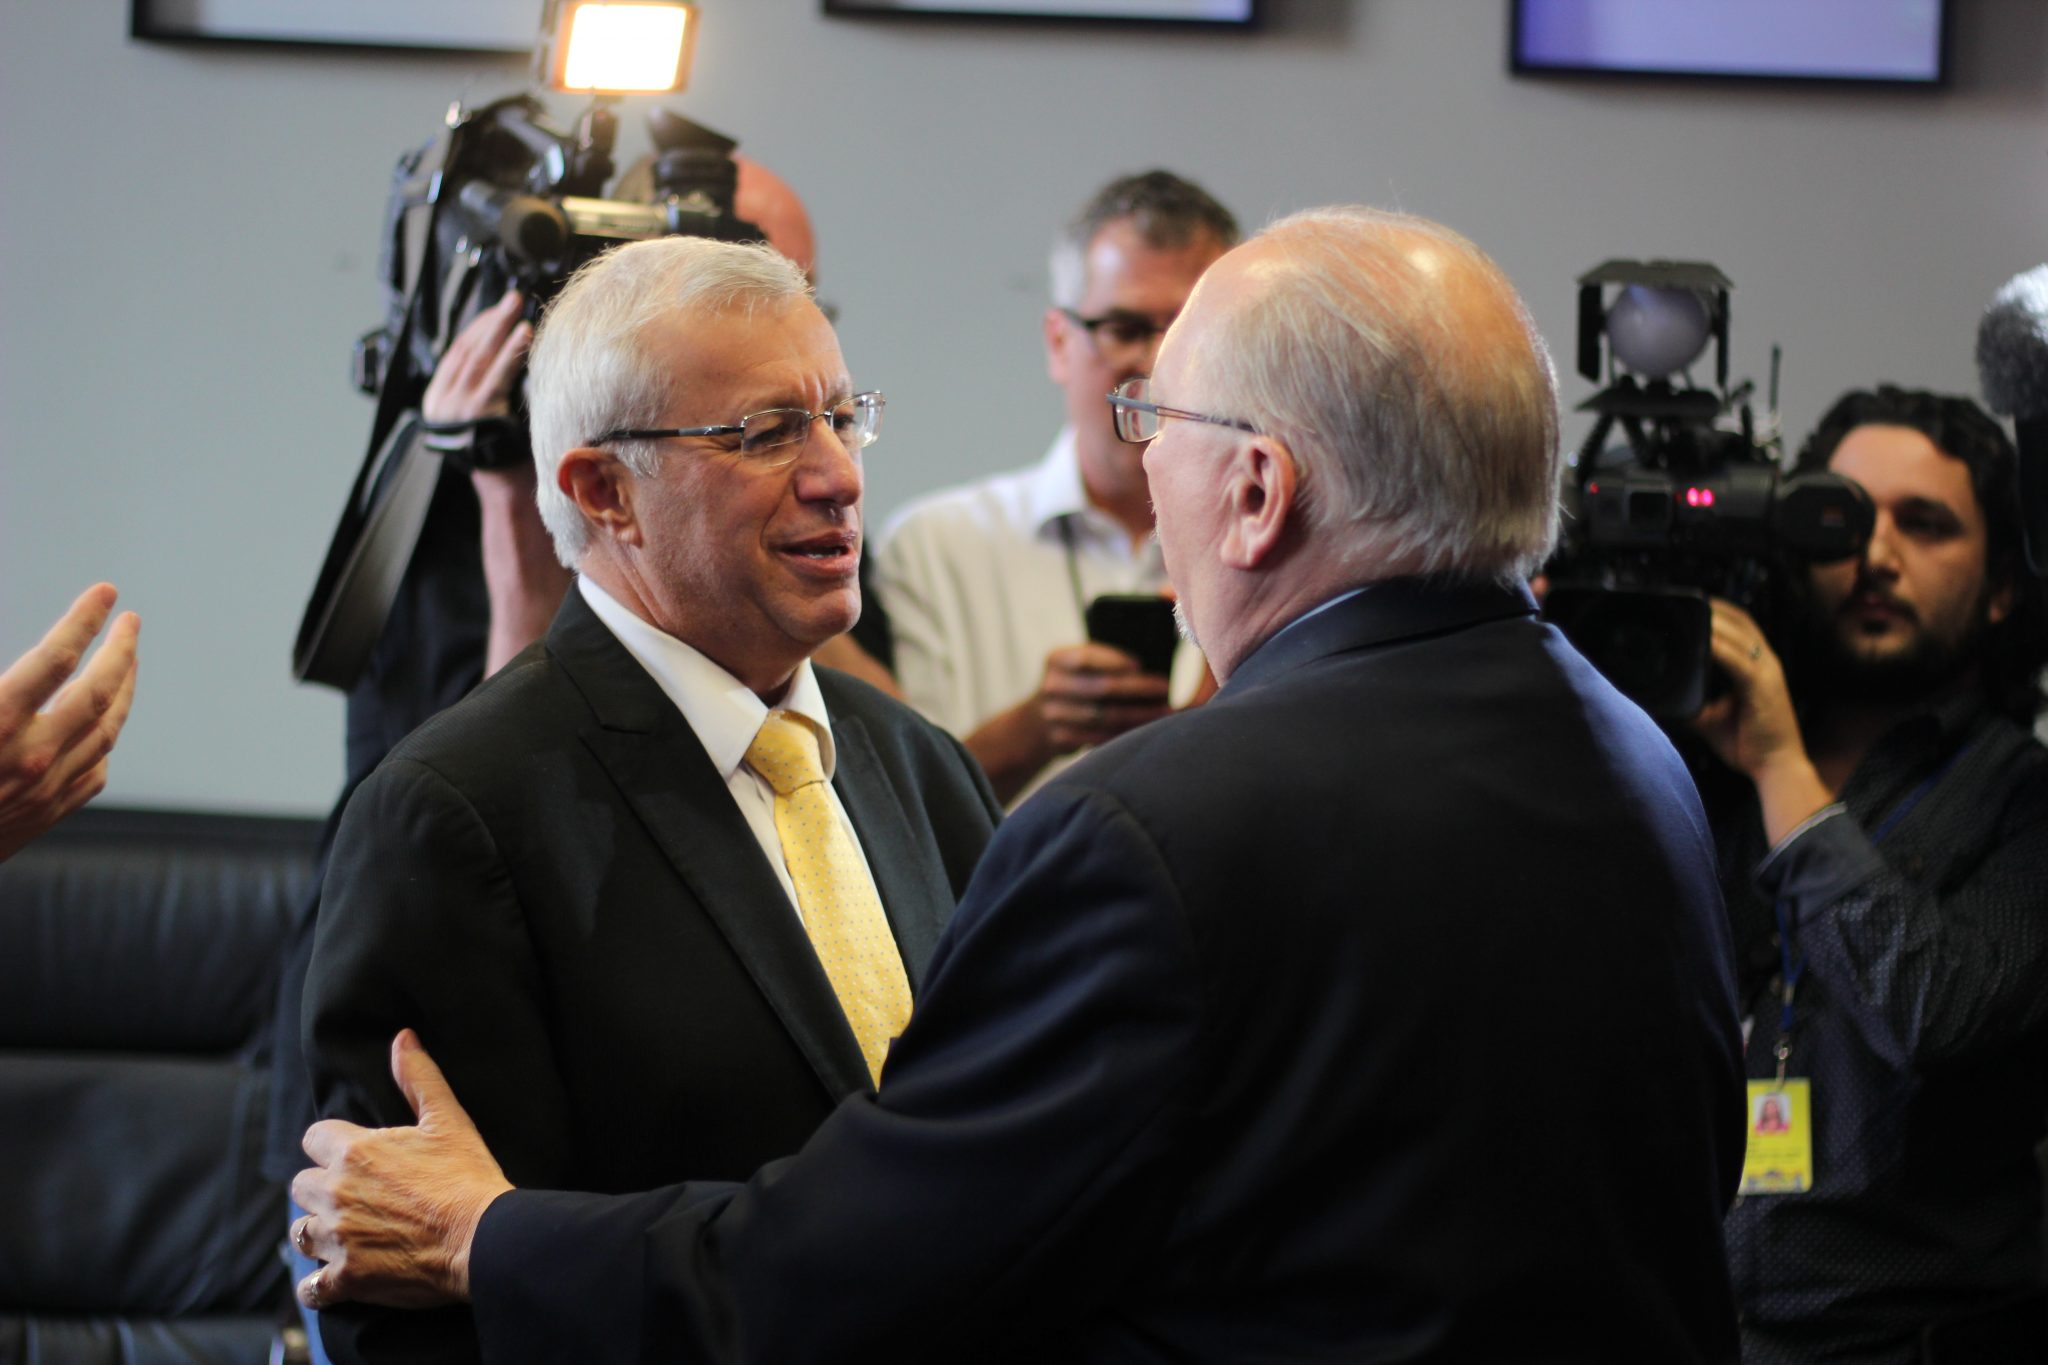 Nipissing MPP Vic Fedeli selected interim PC leader, leadership vote to take place before the general election